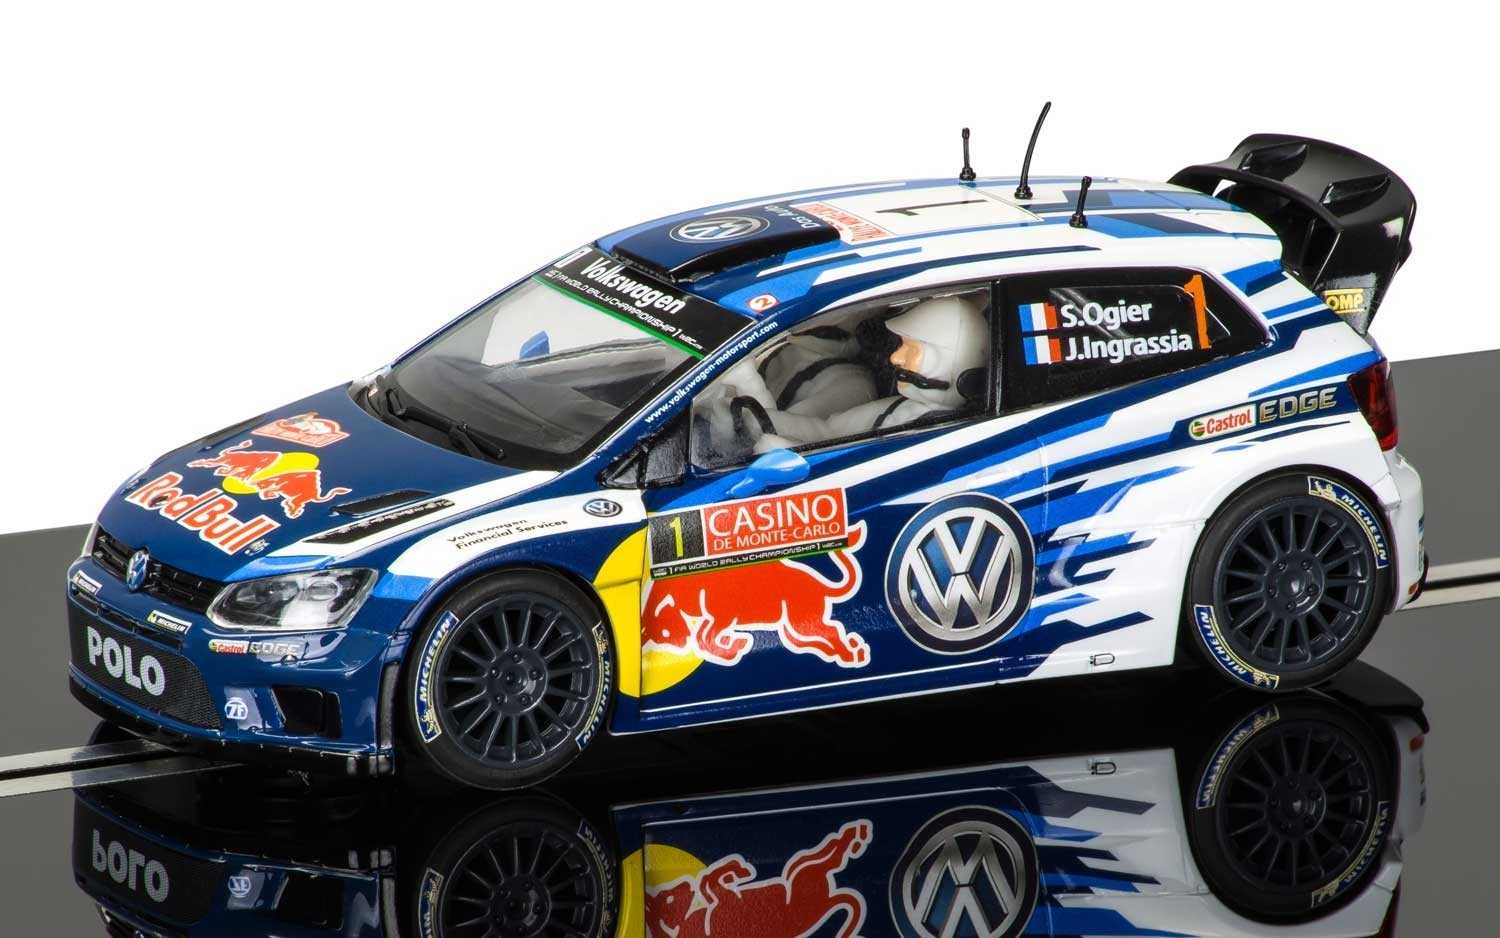 Scalextric Volkswagen Polo WRC Rallye Monte Carlo 2015 Slot Car image